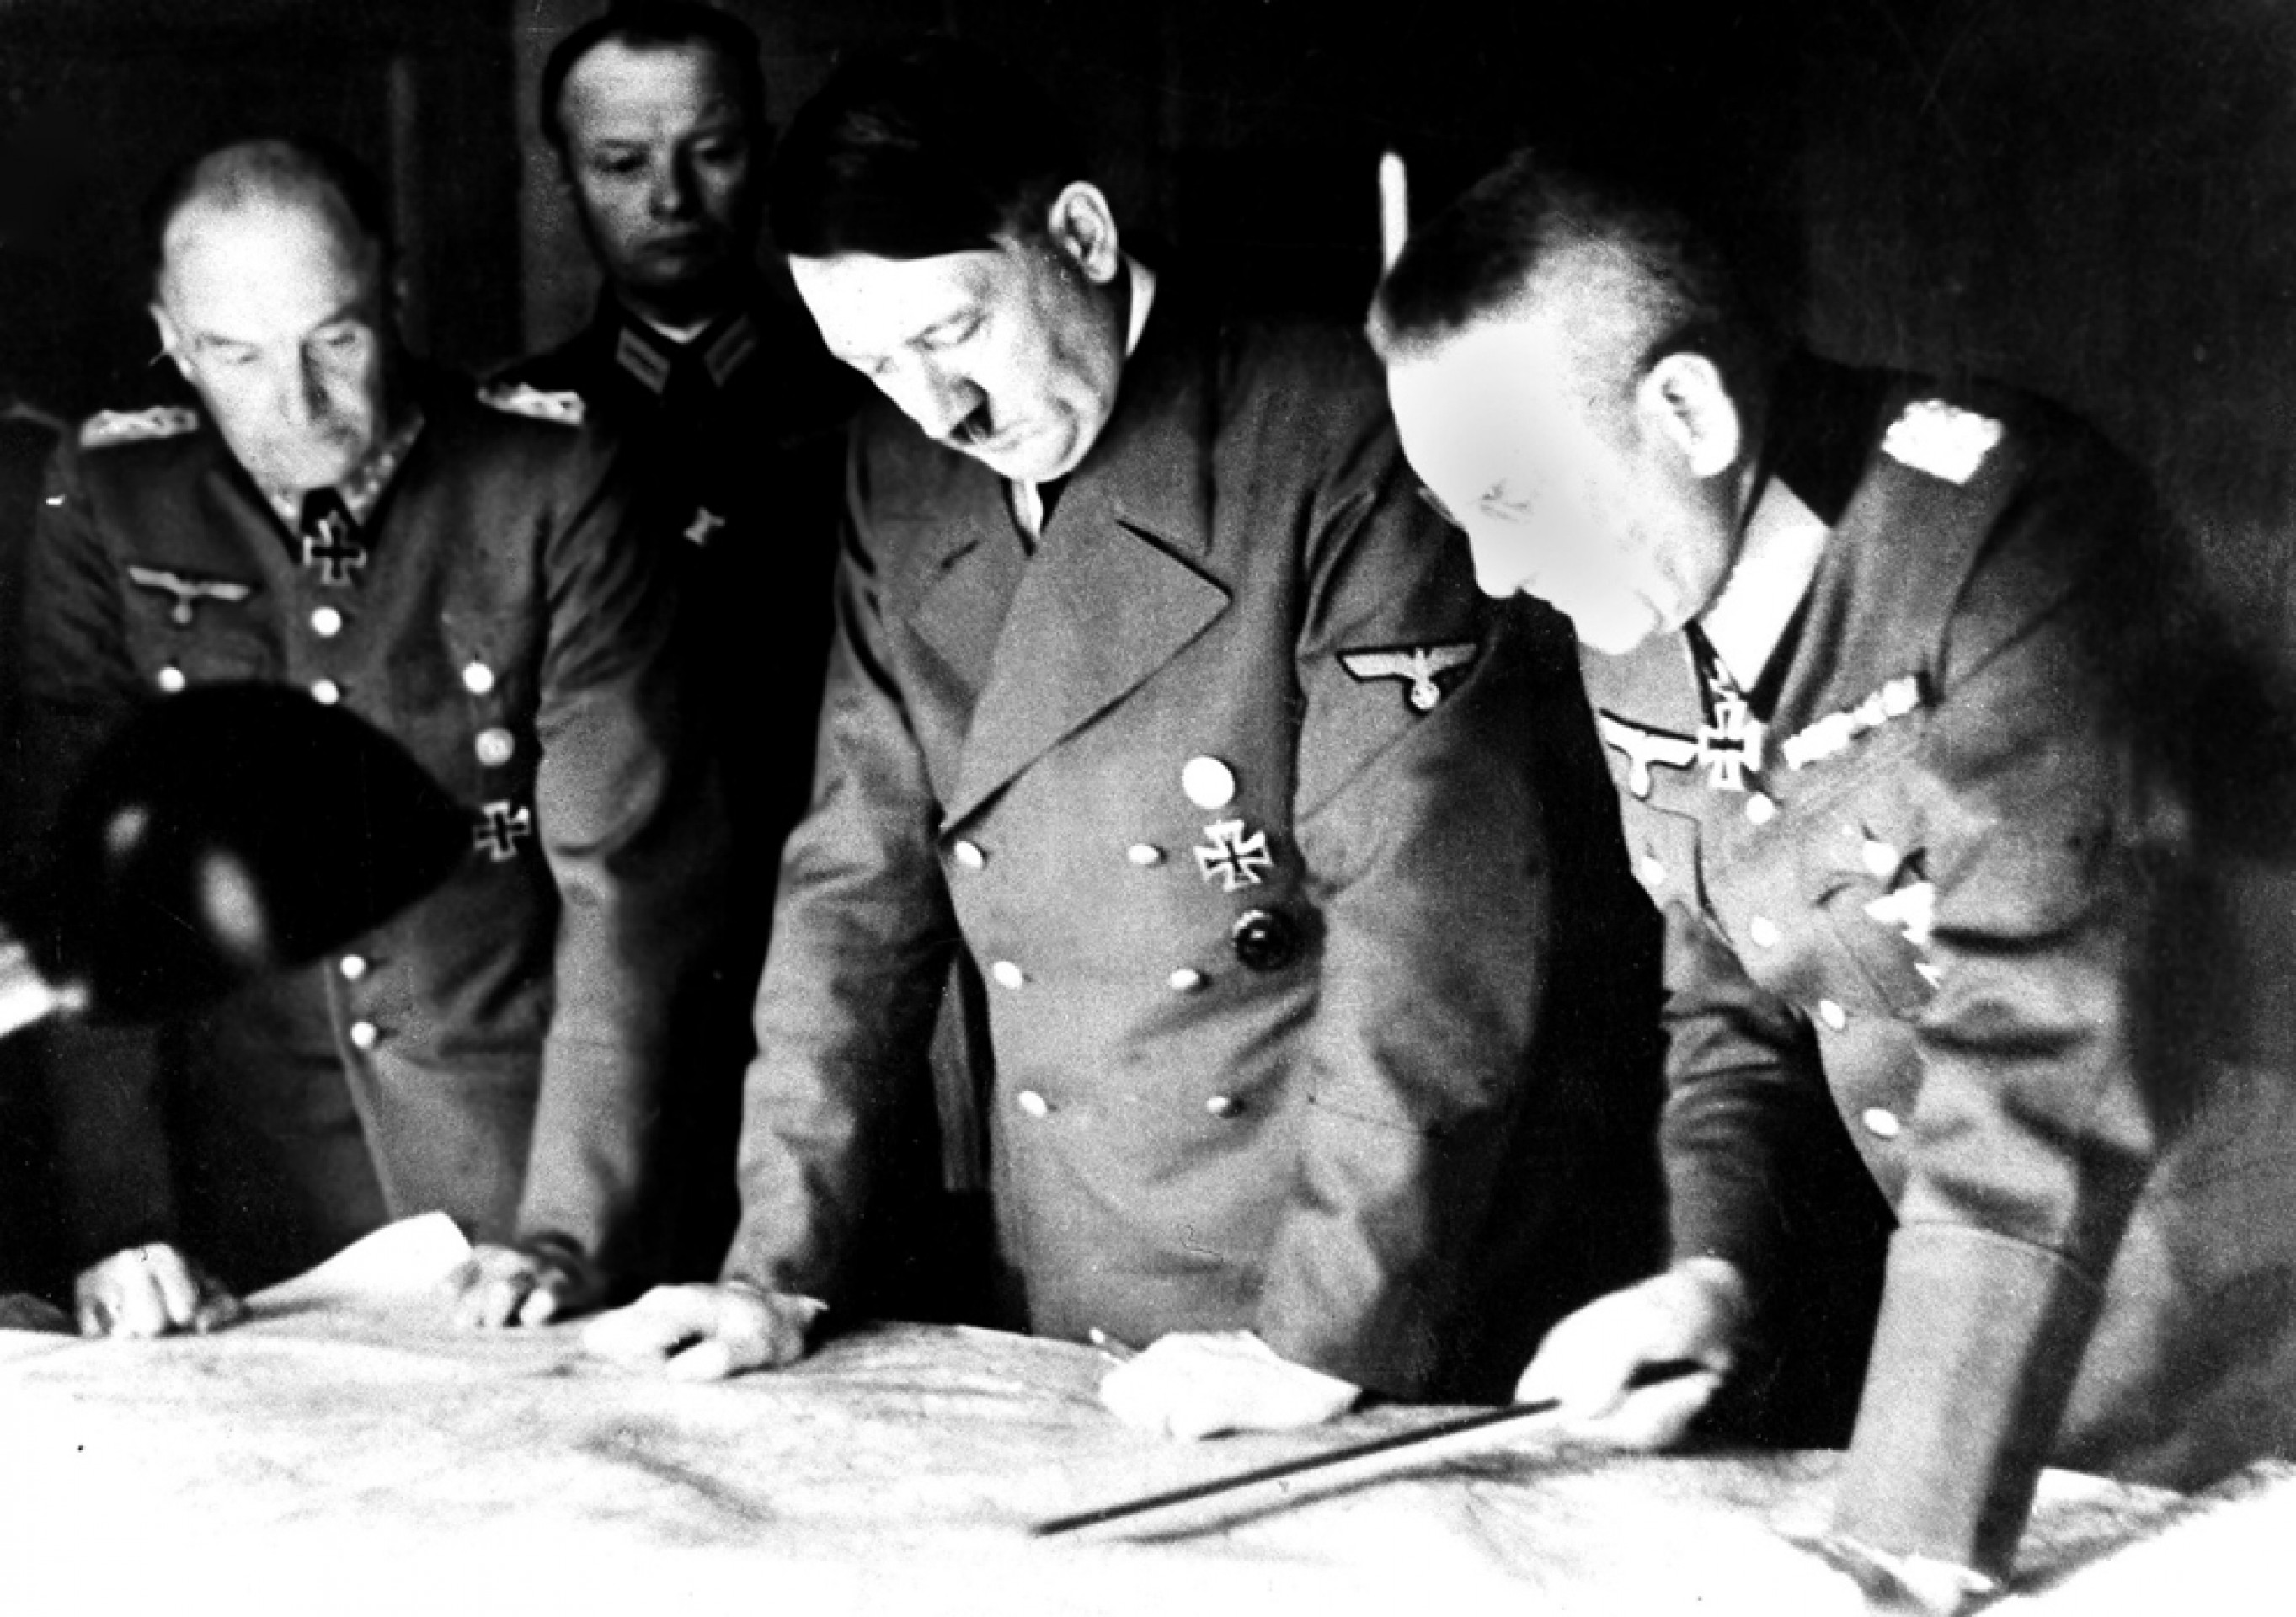 an analysis of adolf hitlers three main aims of preparing germany for world war ii